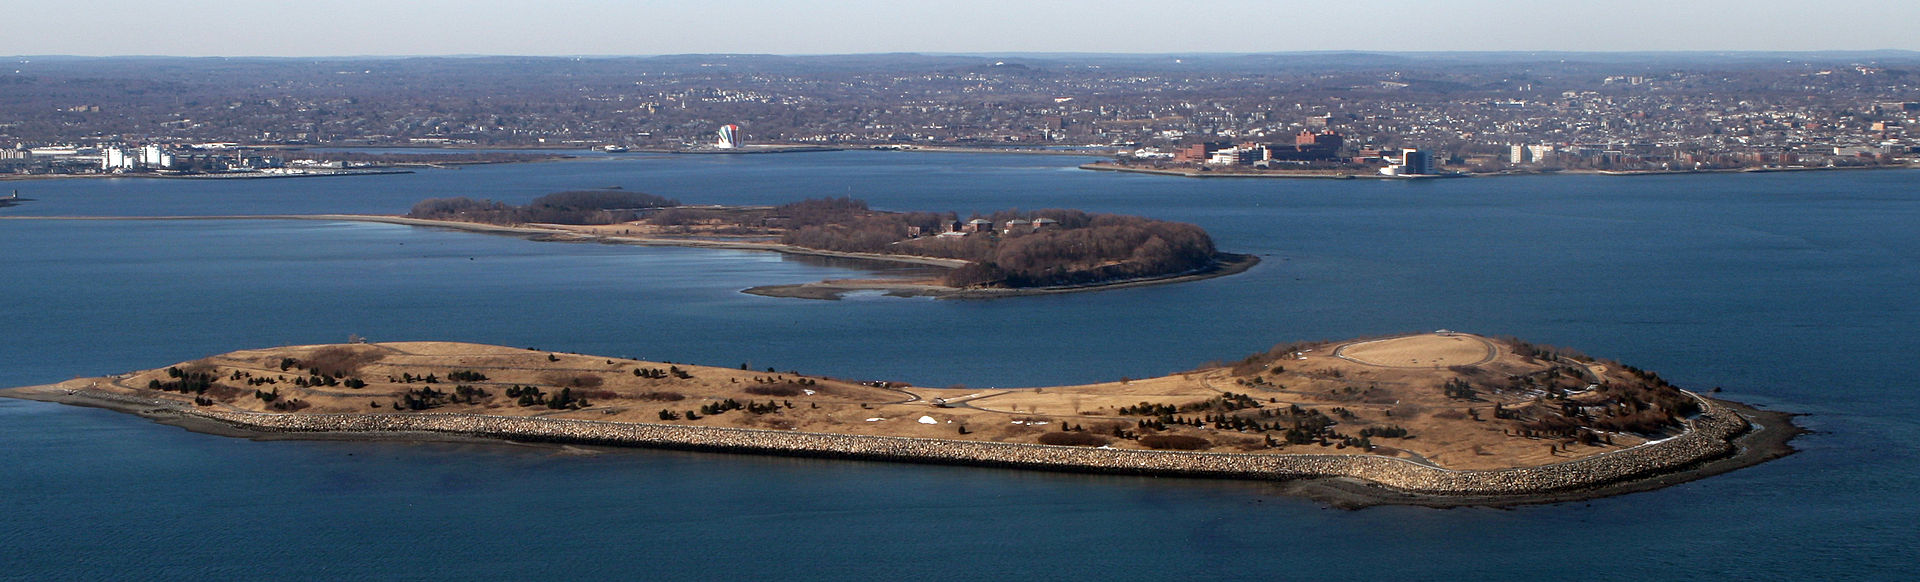 Boston Harbor Islands_Spectacle_Island_Massachusetts